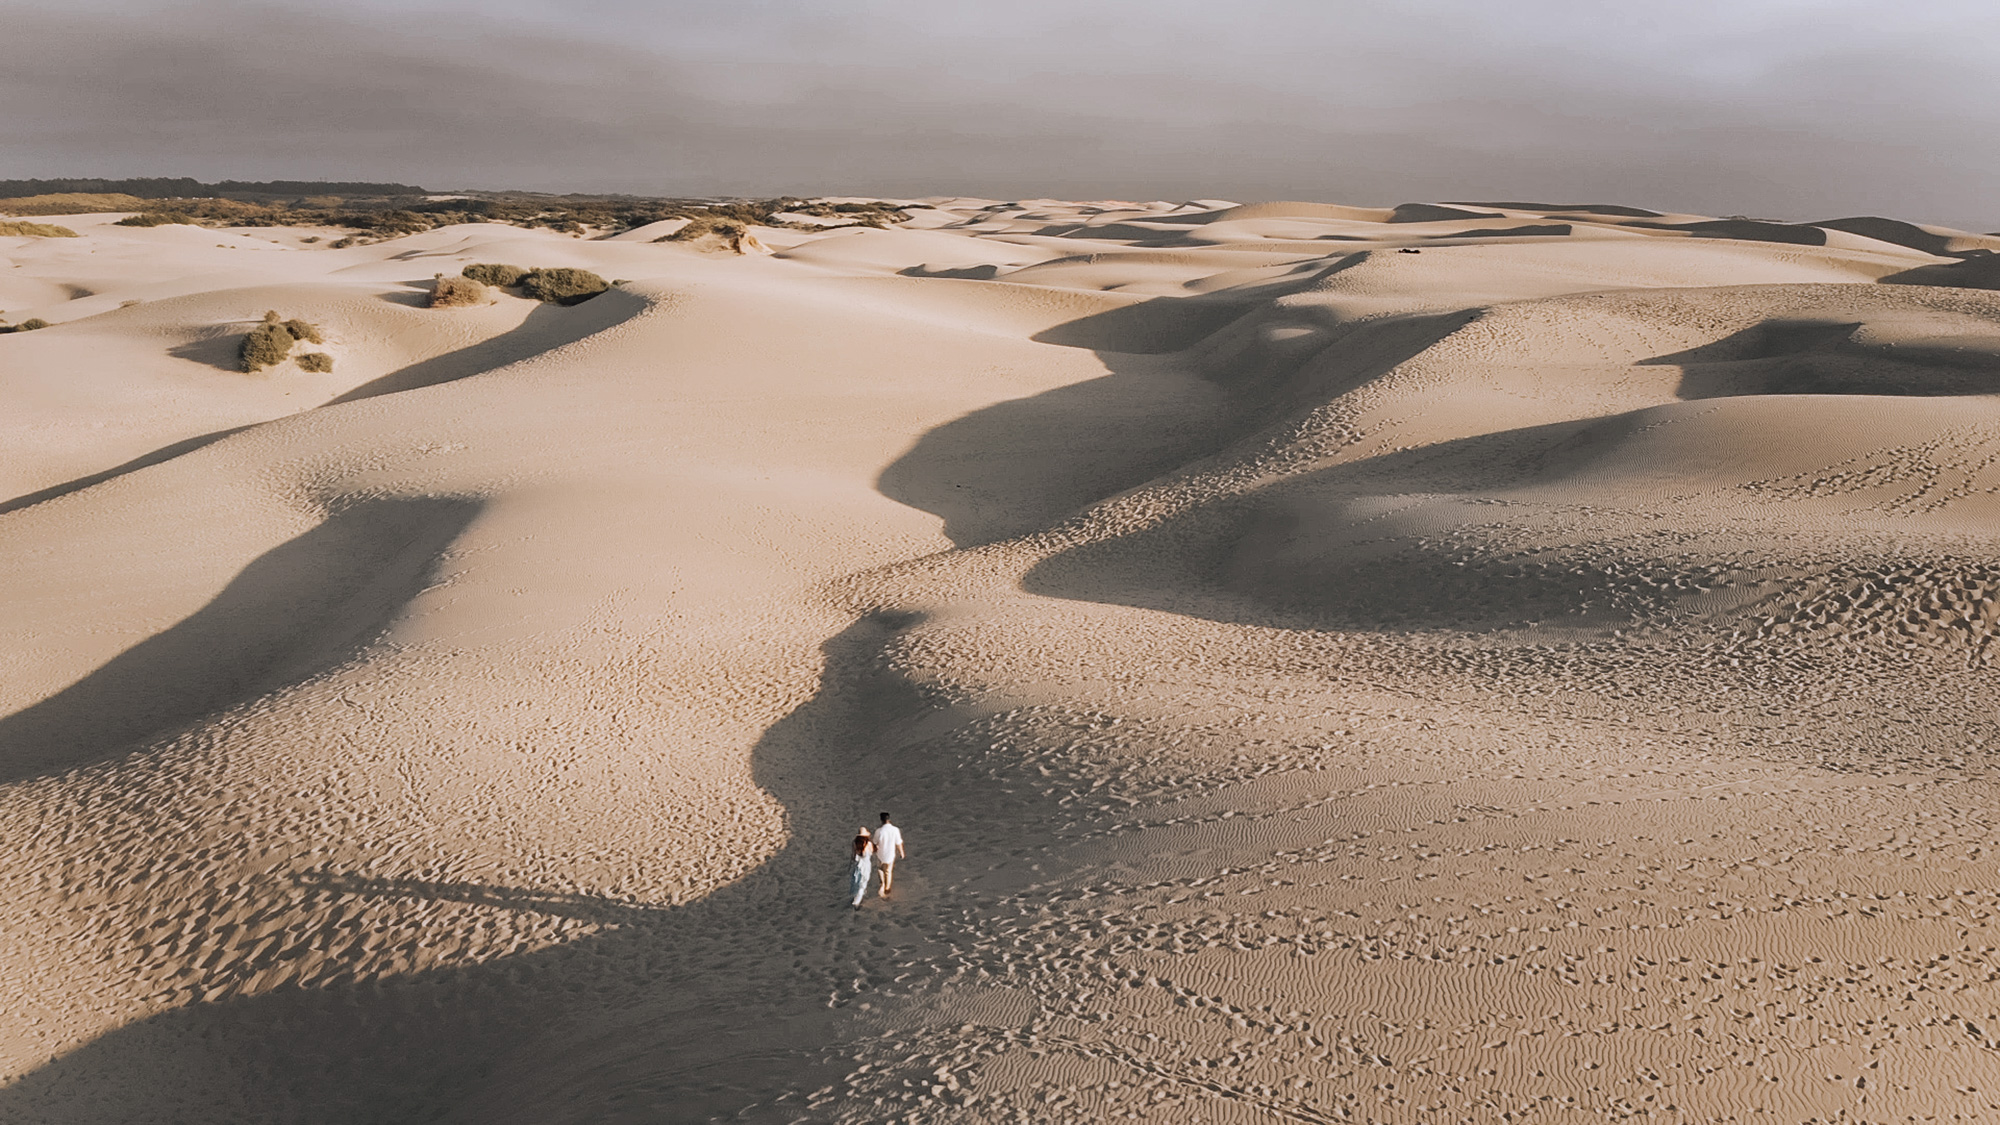 Drone shot of an engaged couple walking up sand dunes in Oceano Dunes, CA